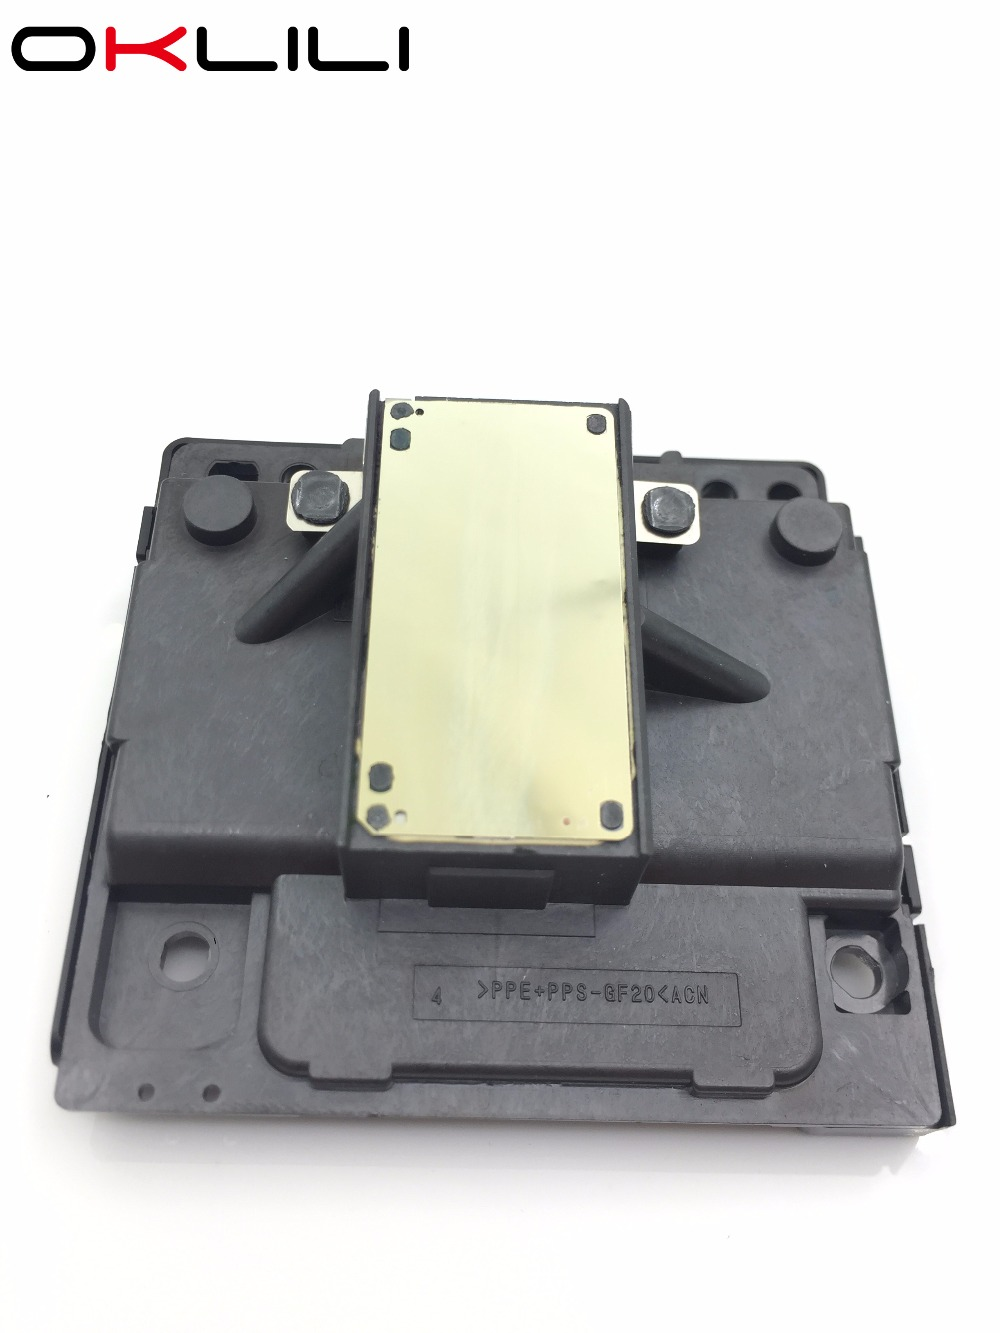 F197010 Printhead Print Head for Epson SX430W SX435W SX438W SX440W SX445W XP-30 XP-33 XP-102 XP-103 XP-202 XP-203 XP-205 NX430 ciss for epson xp 342 xp 432 xp 235 xp 332 xp 335 xp 435 xp235 printer empty for epson t2991 t2992 with arc chips